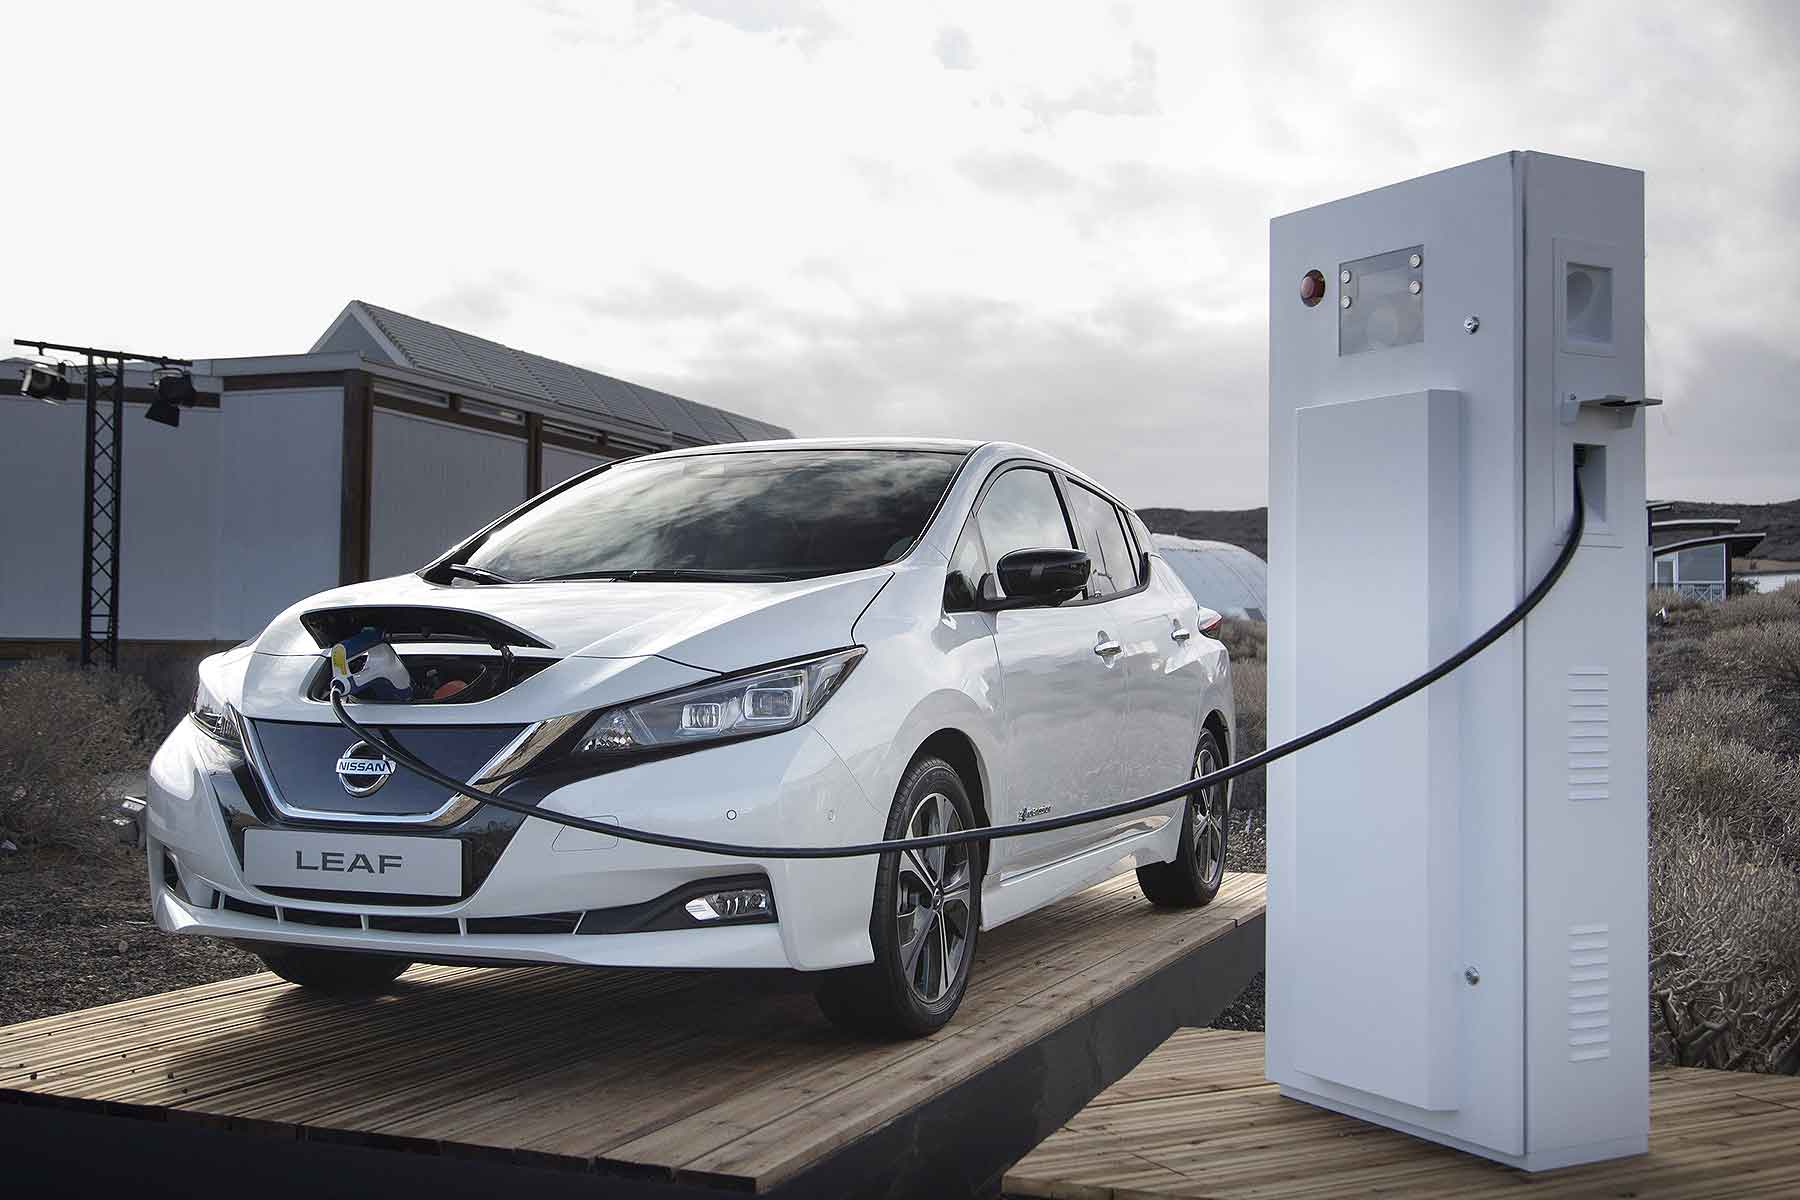 Nissan Leaf New Car S In March 2018 Saw The 12th Monthly Decline A Row With Overall Registrations Plunging By Whopping 15 7 Percent According To